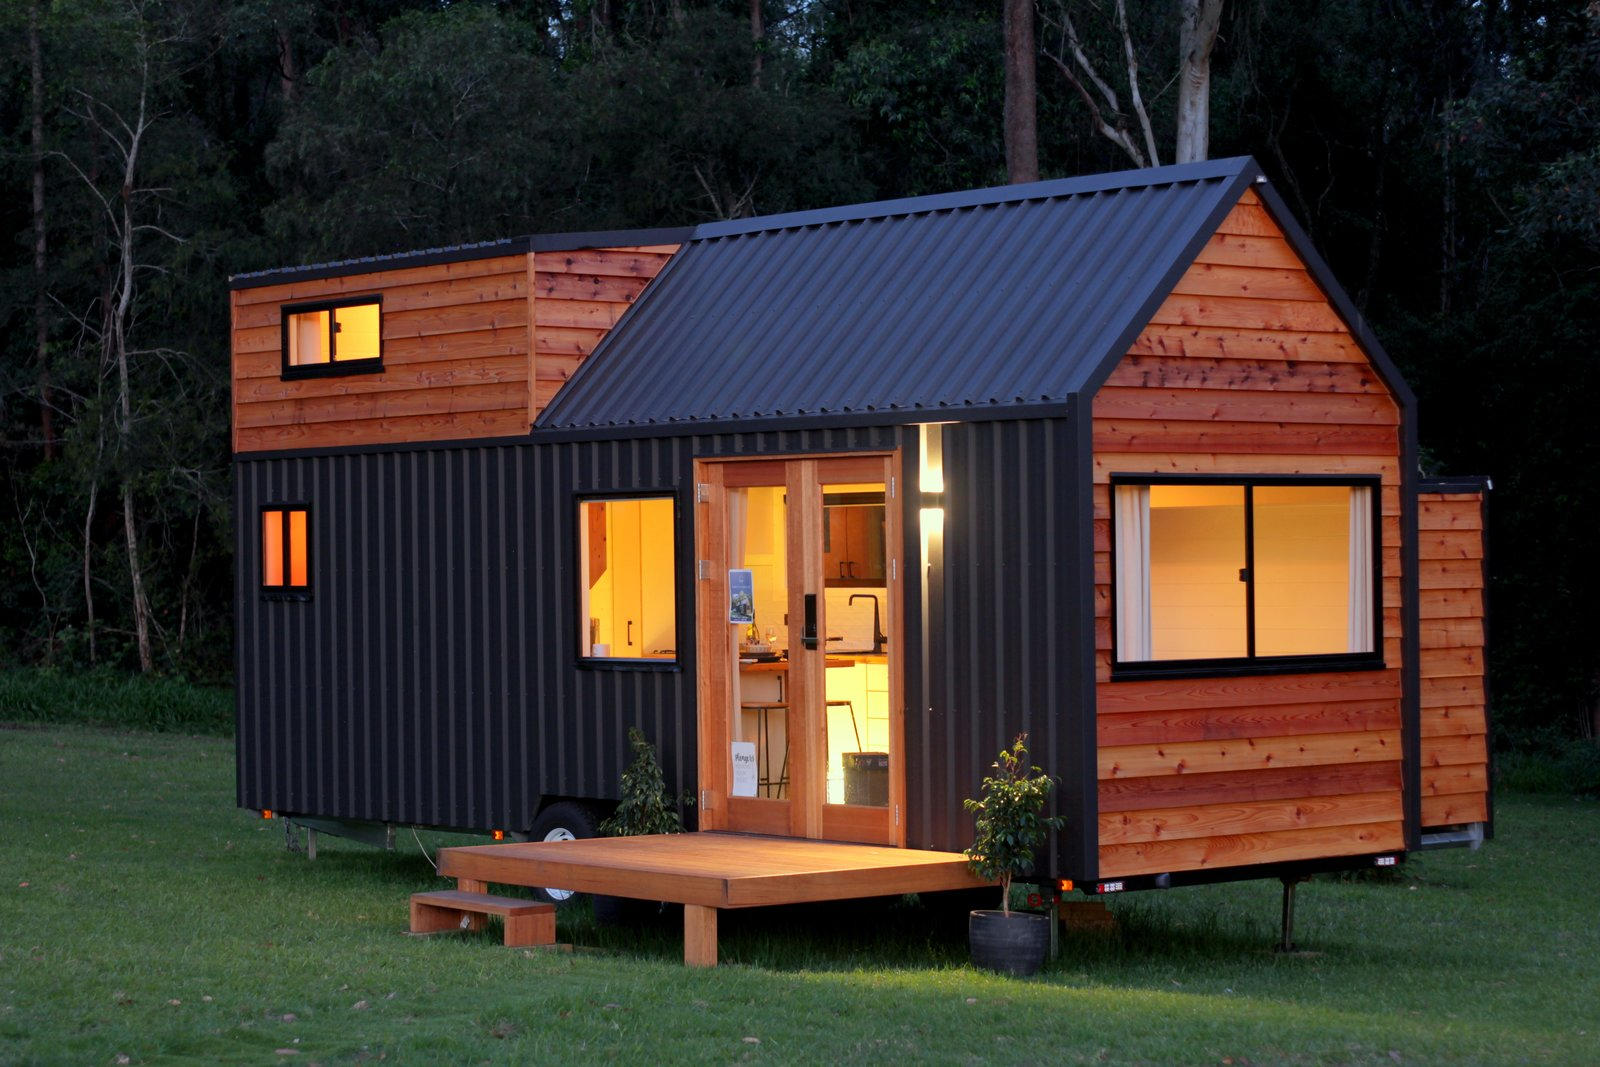 Sojourner tiny house exterior with slide-out